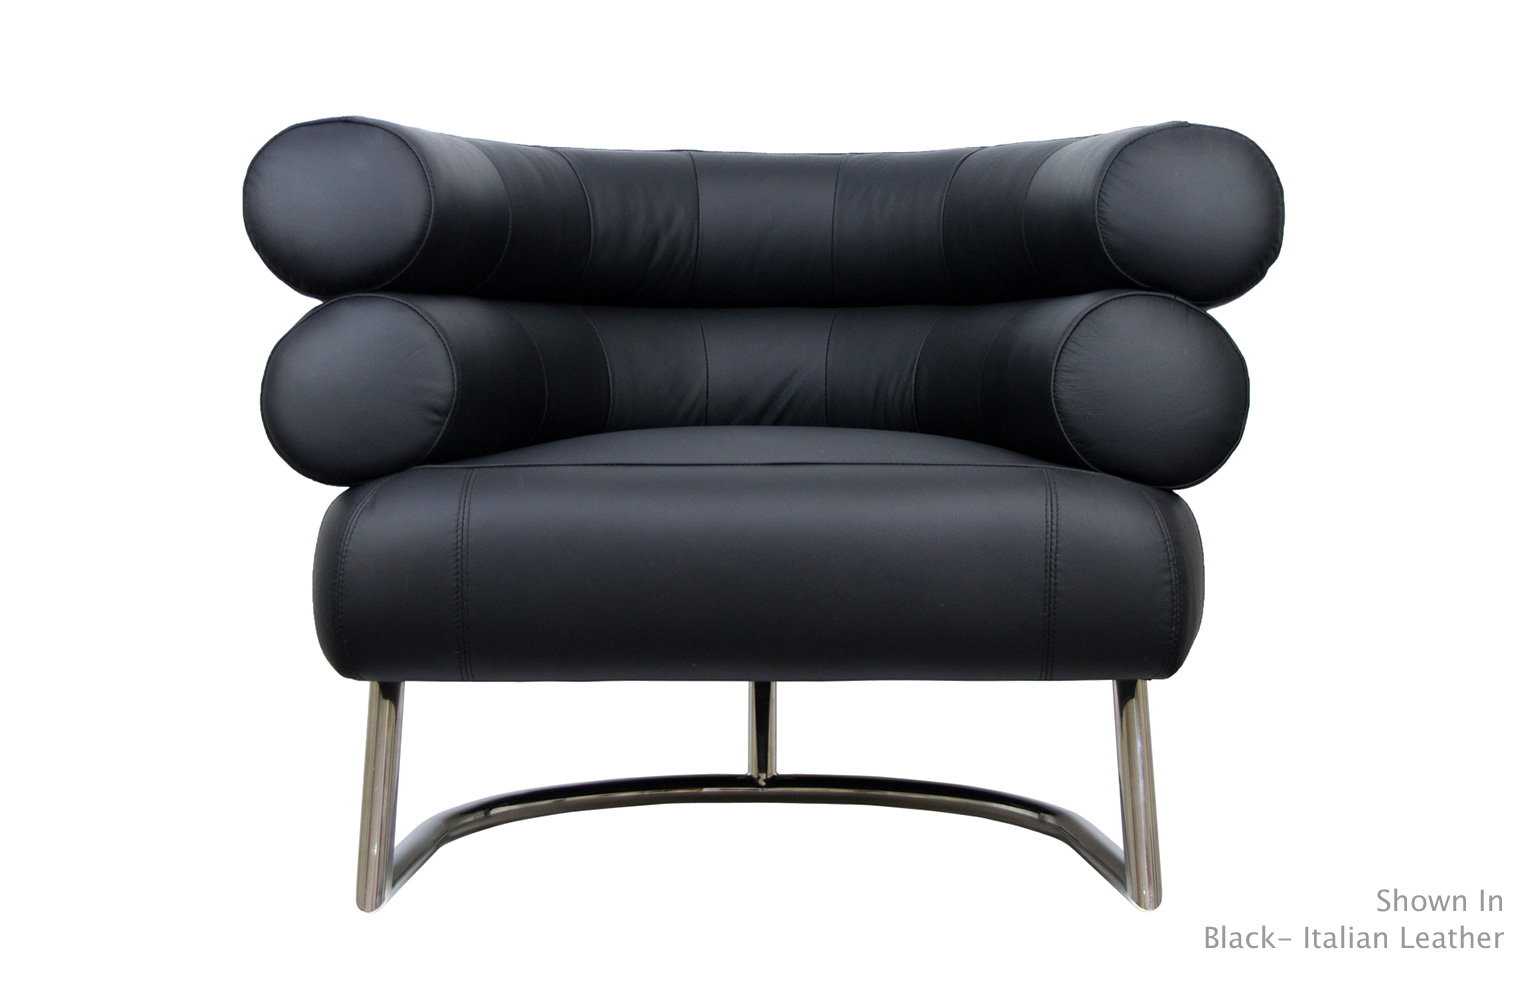 Non Conformist | ARAM | Eileen Gray |Eileen Gray Furniture